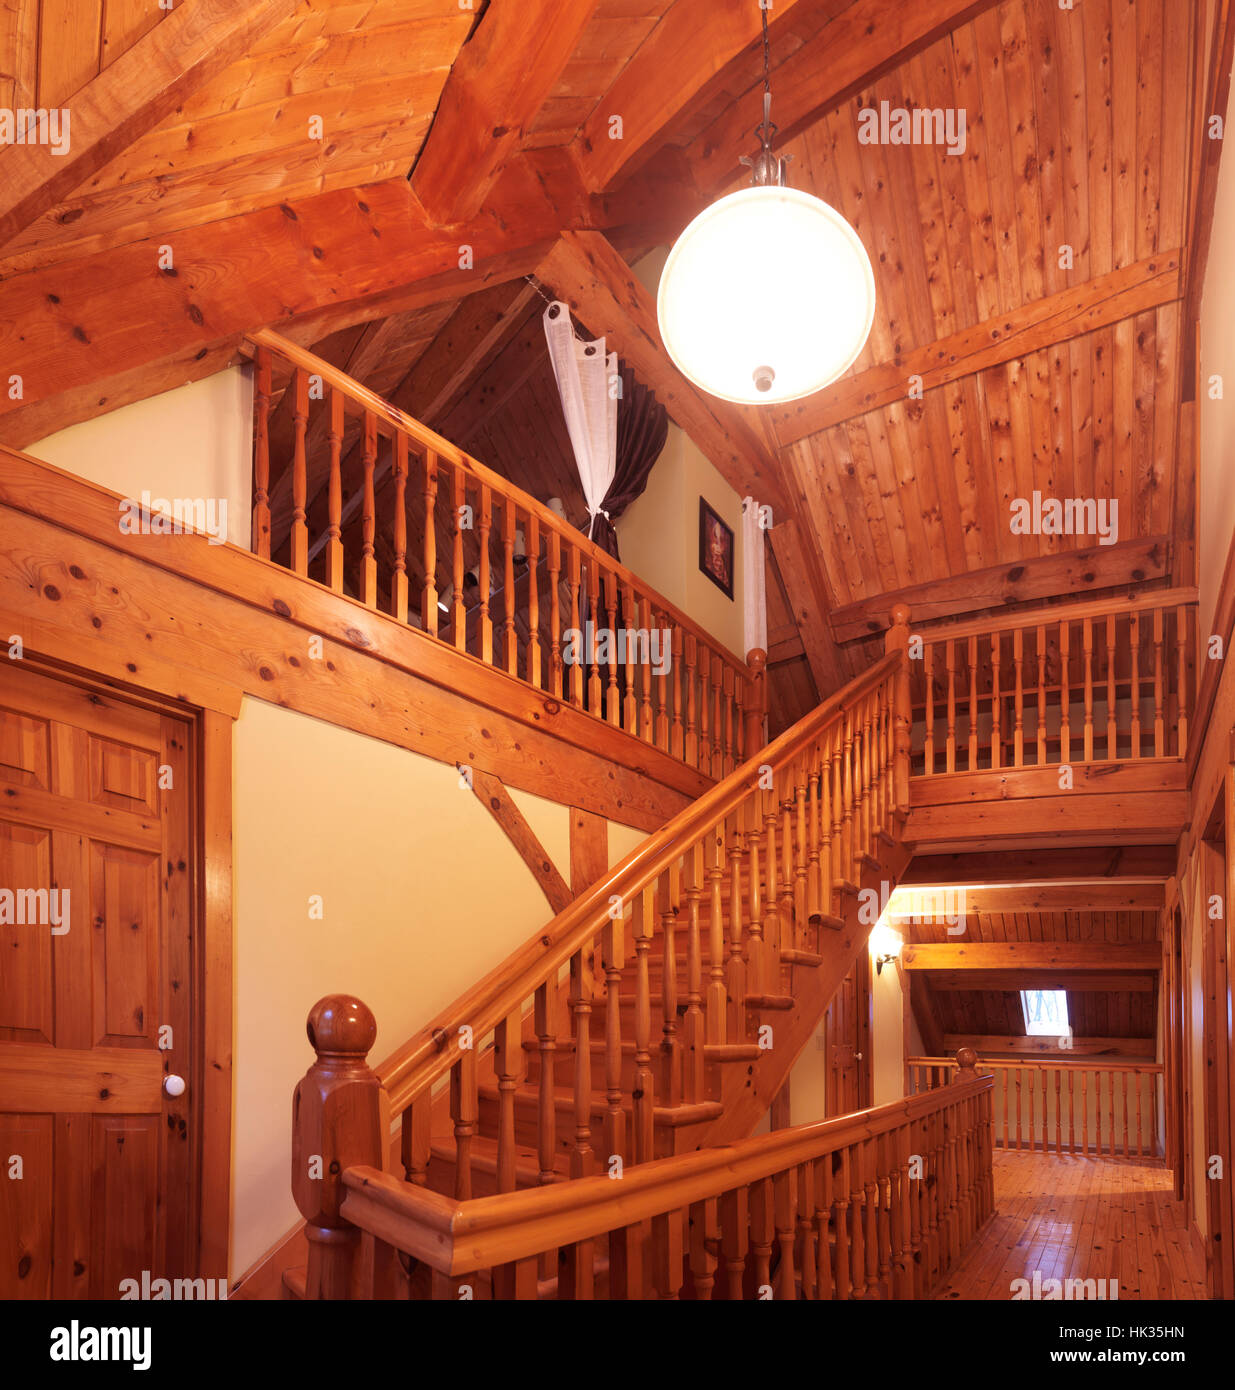 Timber frame cottage style Canadian country house interior with a wooden staircase leading to the loft, Muskoka, - Stock Image